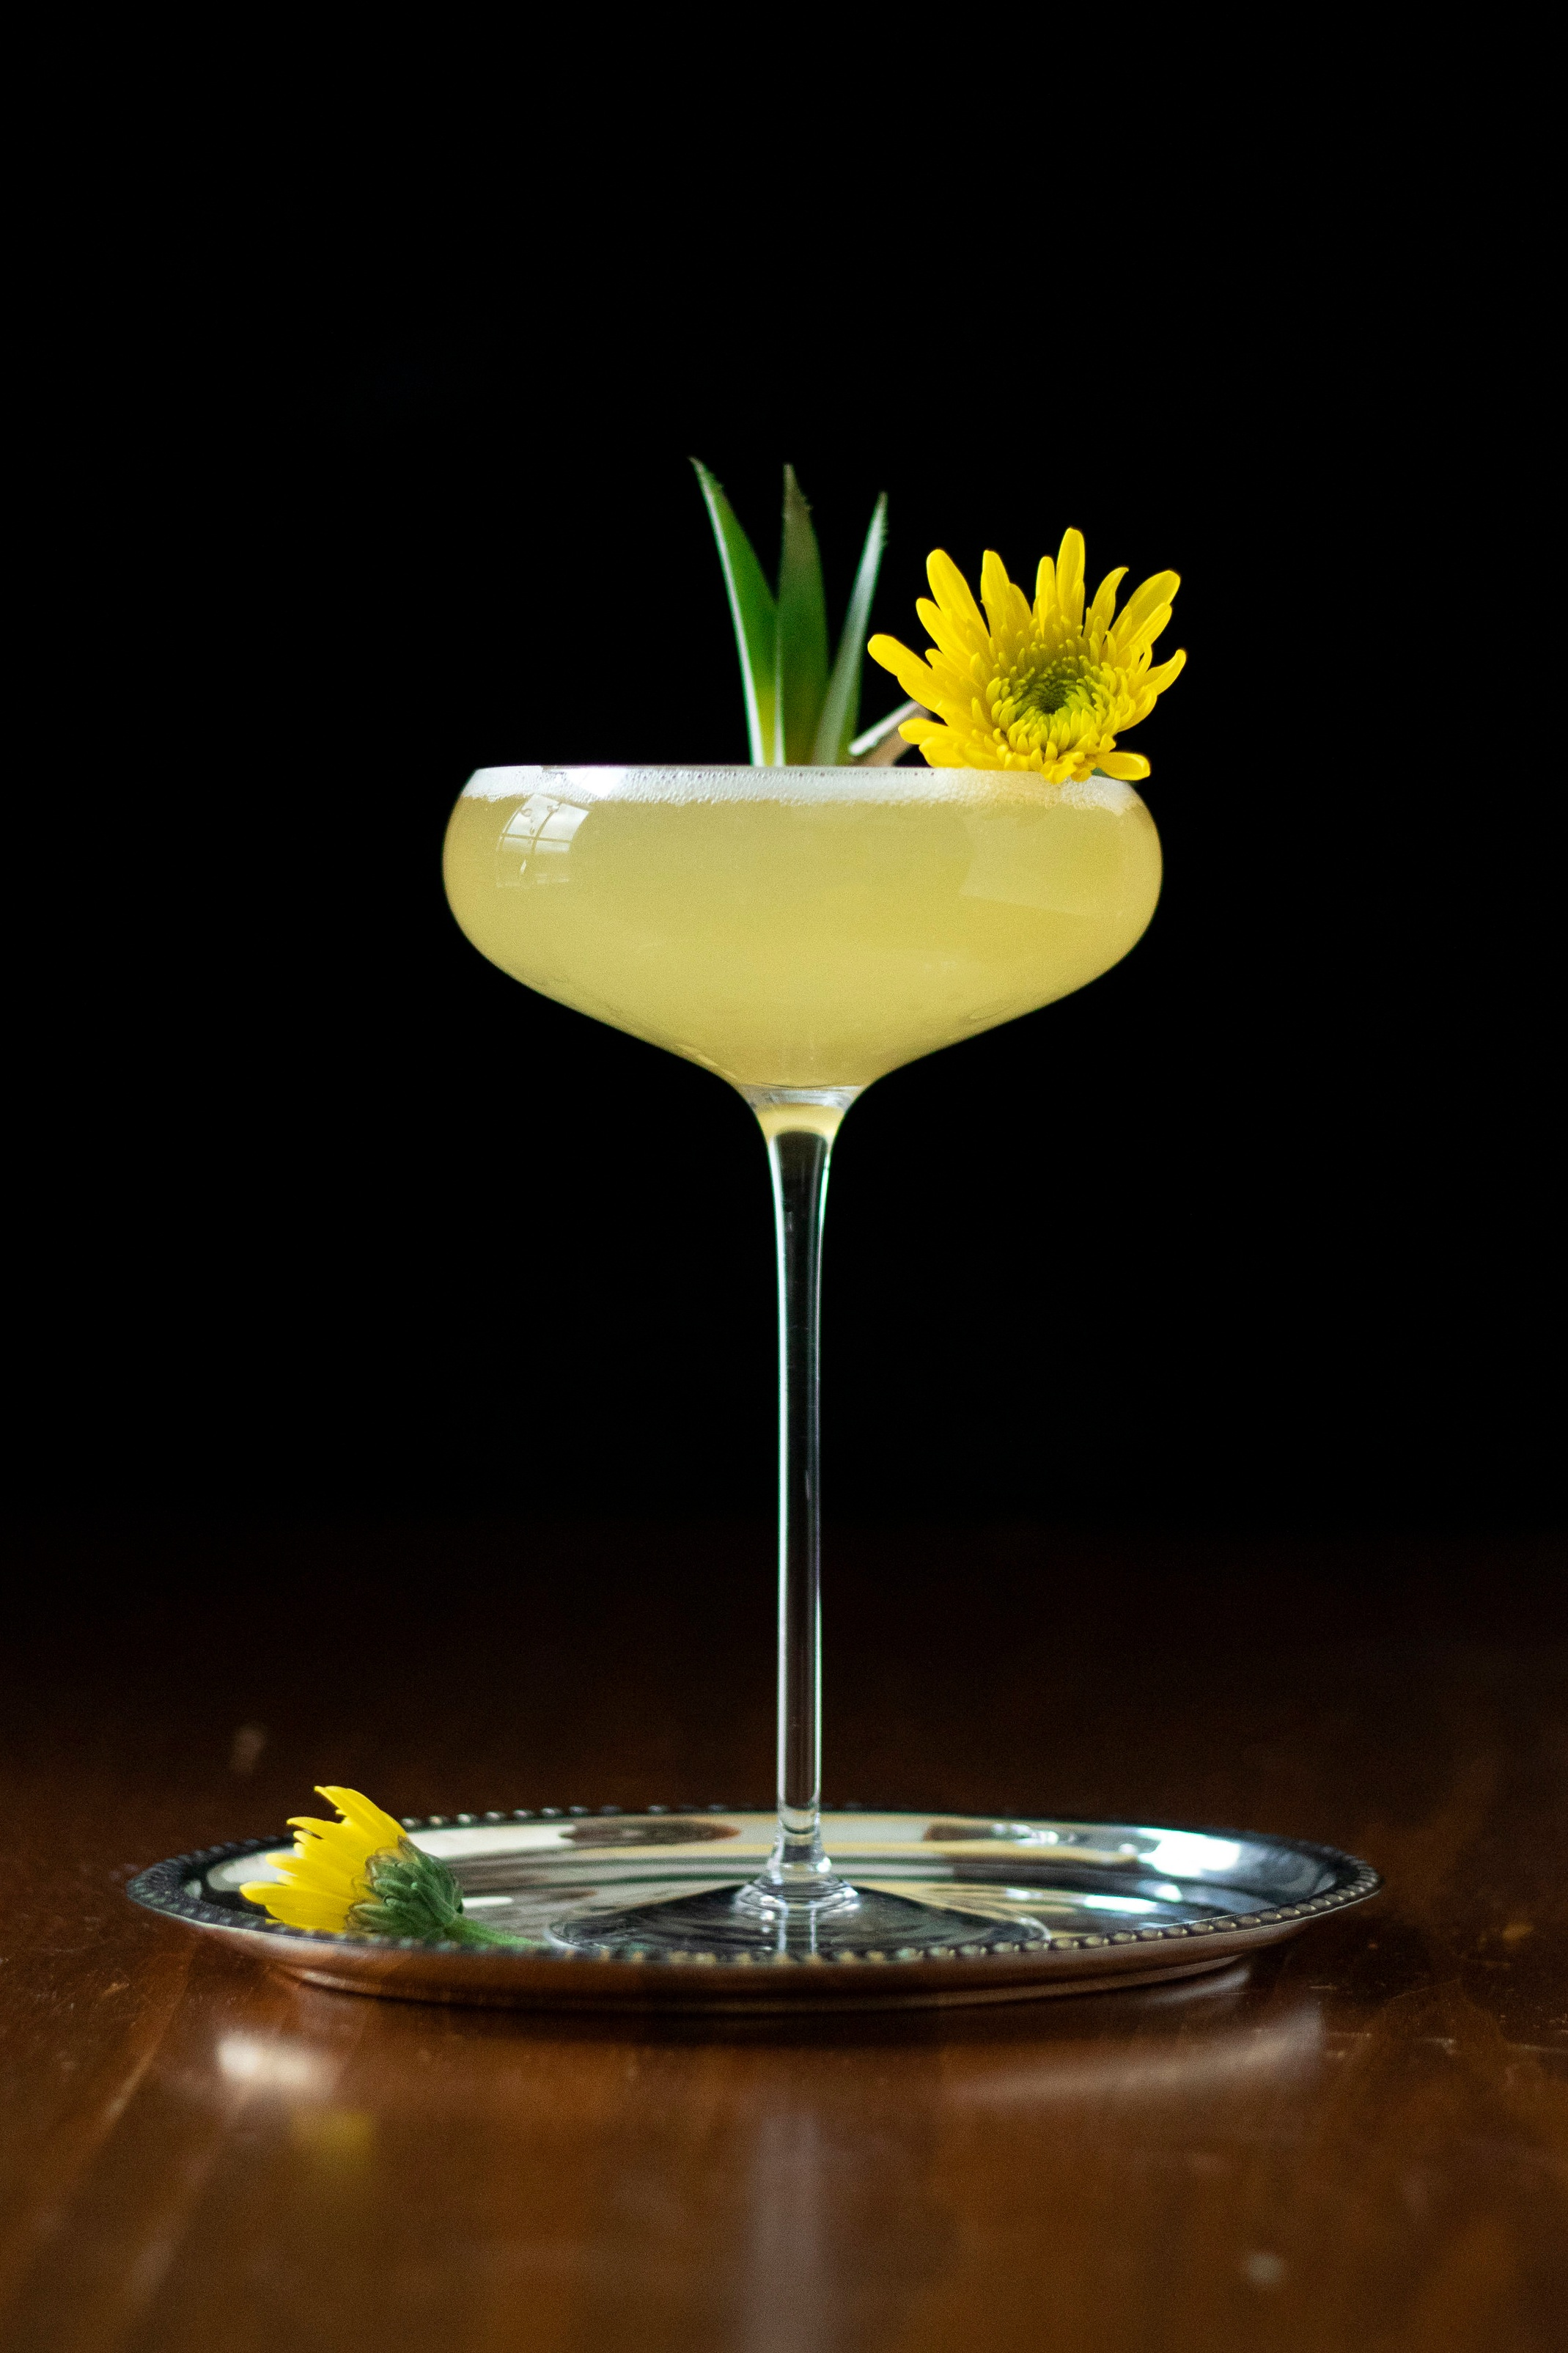 A margarita is a great example of balancing sweet and sour flavors, while enhancing them with salt.